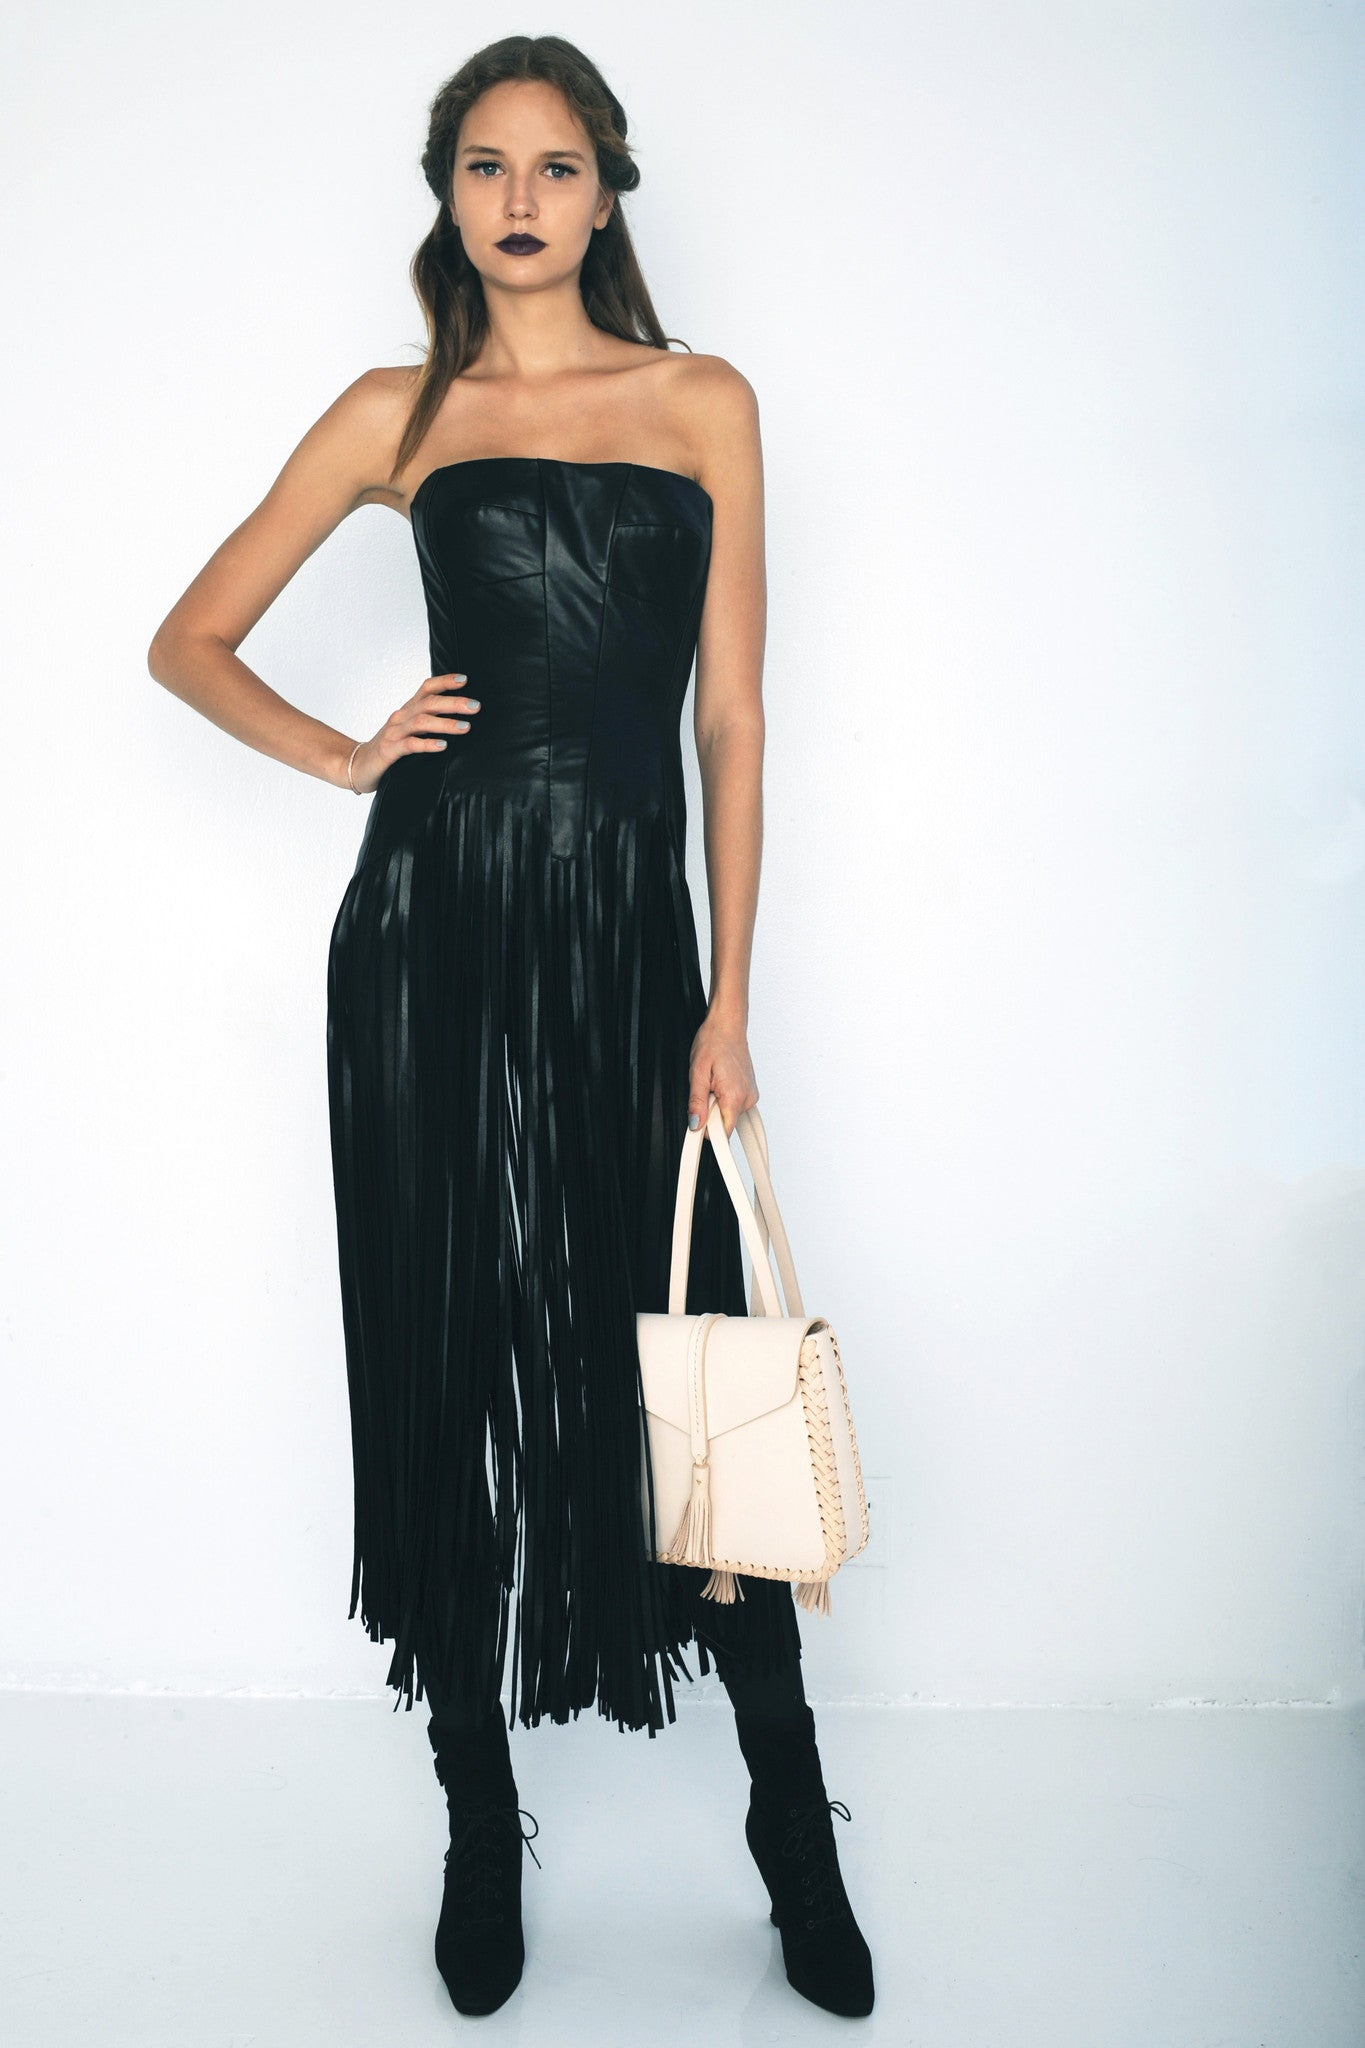 Black Clothes Designers | Belt Of Venus Leather Fringe Corset Dress Wendy Nichol